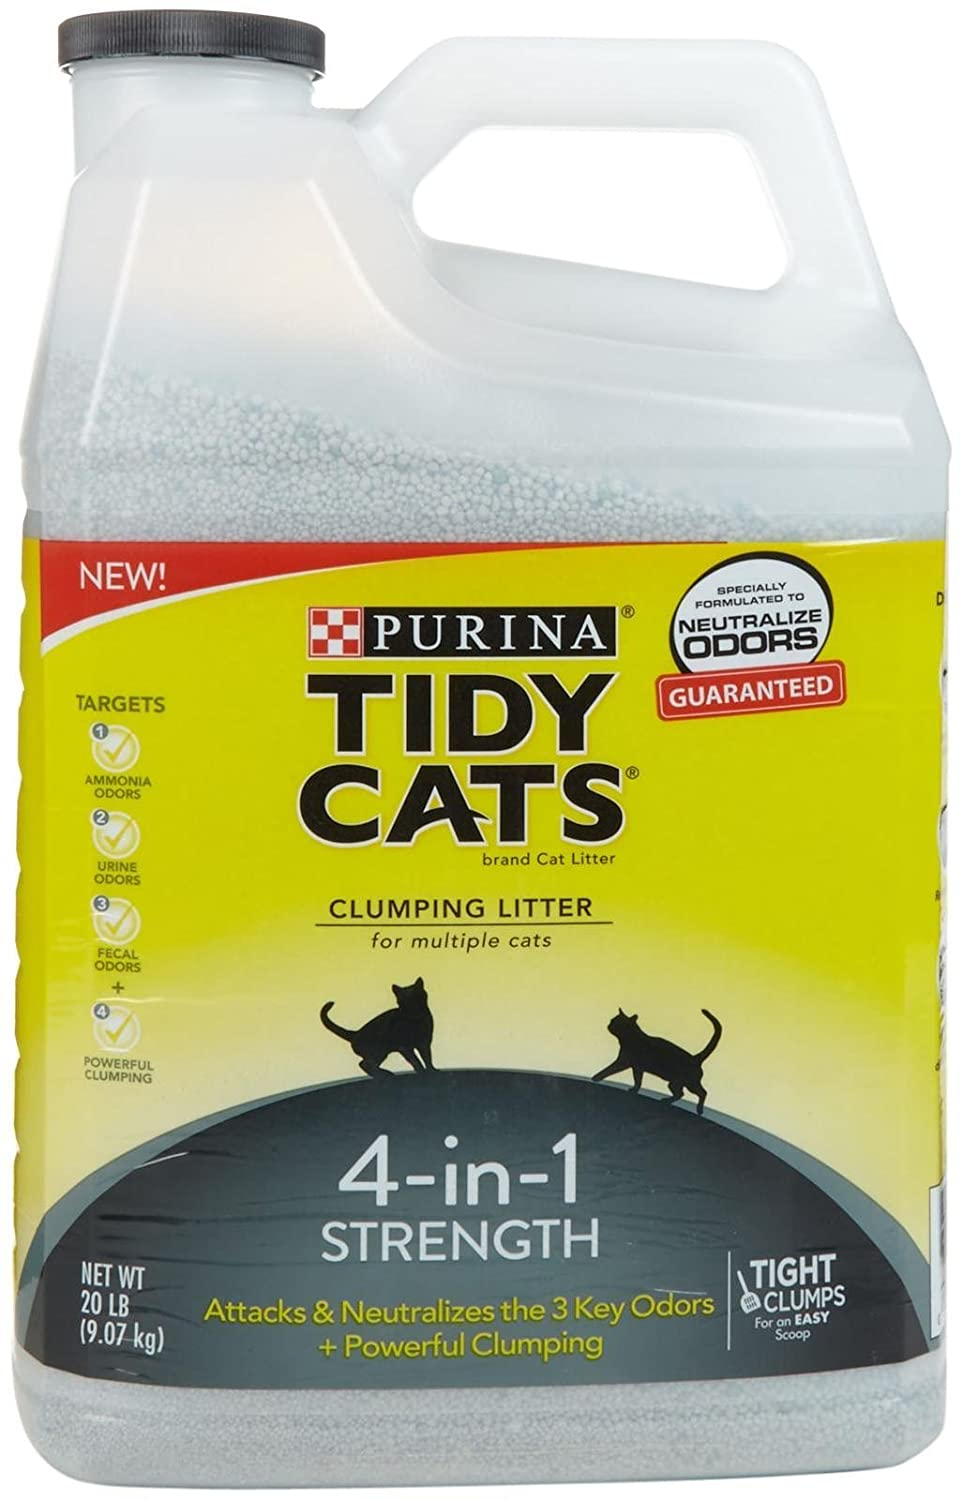 Tidy Cats 4 in 1 Strength Clumping Cat Litter 20 Lb